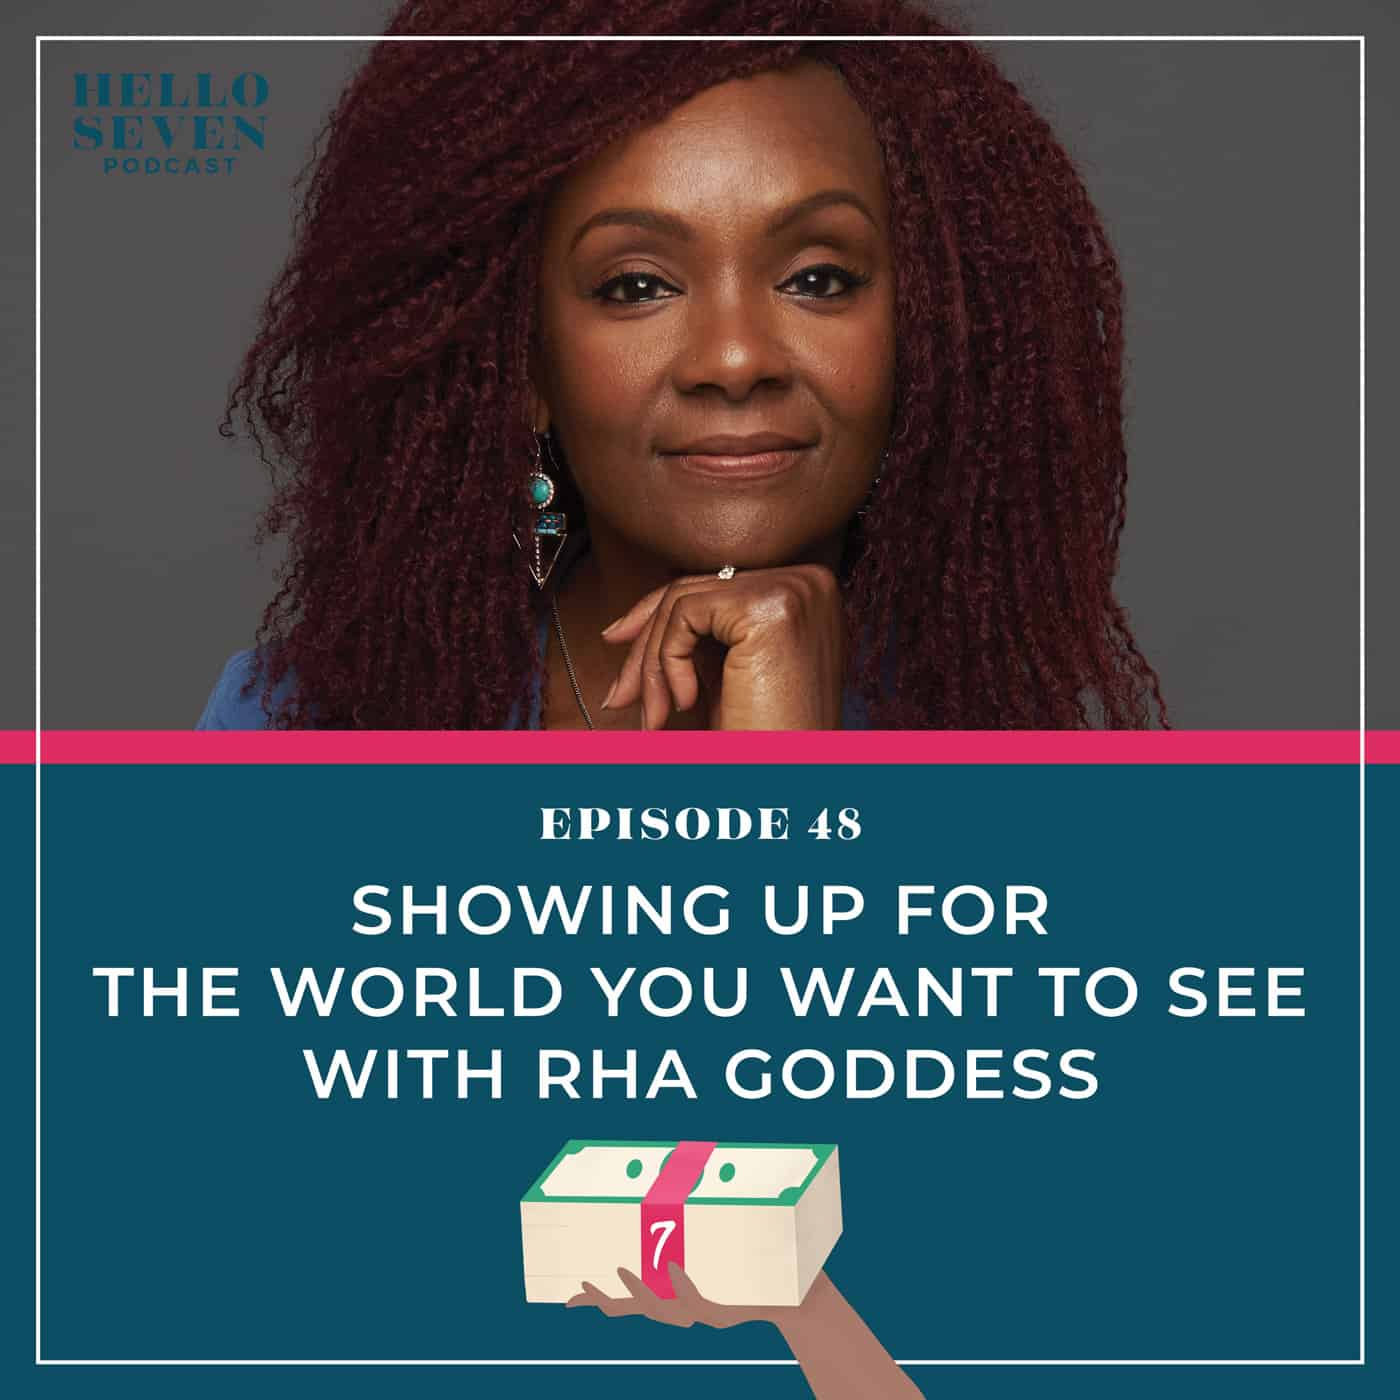 Showing Up for the World You Want to See with Rha Goddess